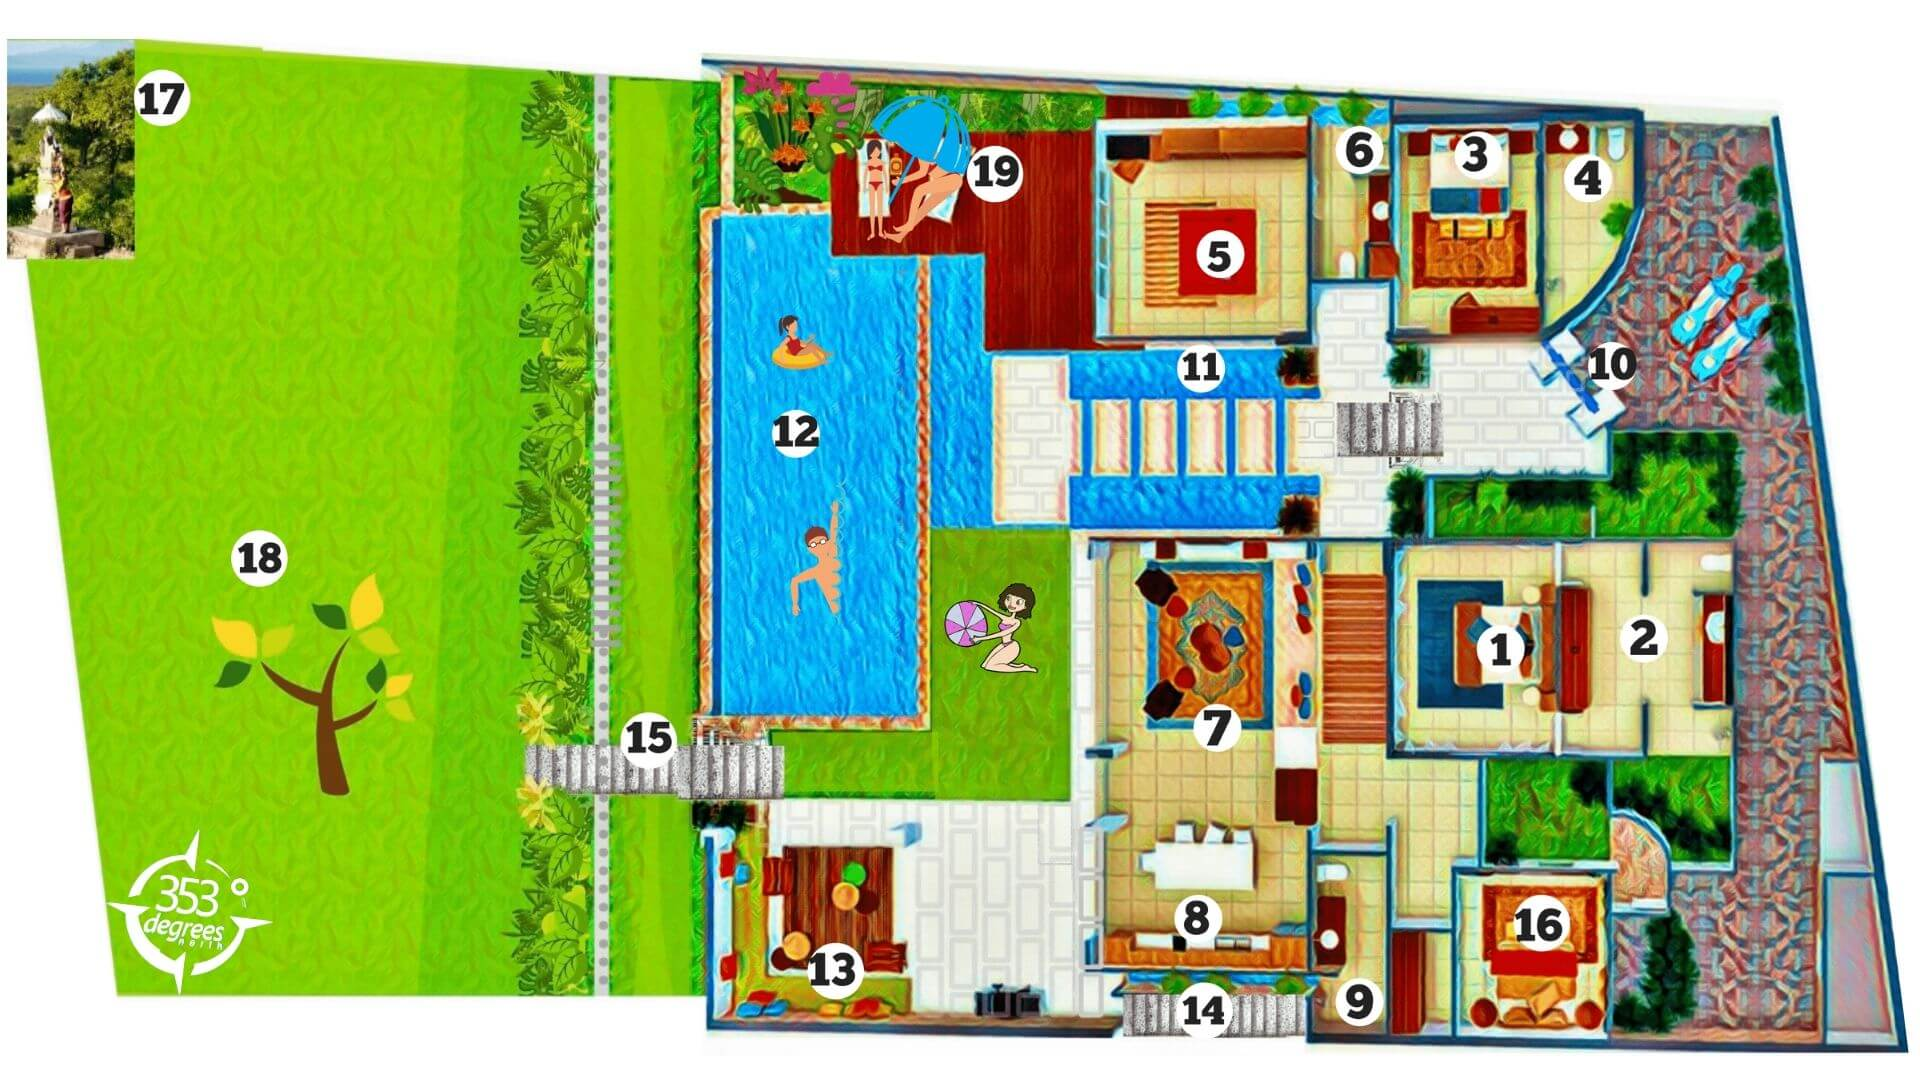 THE VILLA 353 DEGREES NORTH FLOOR PLAN